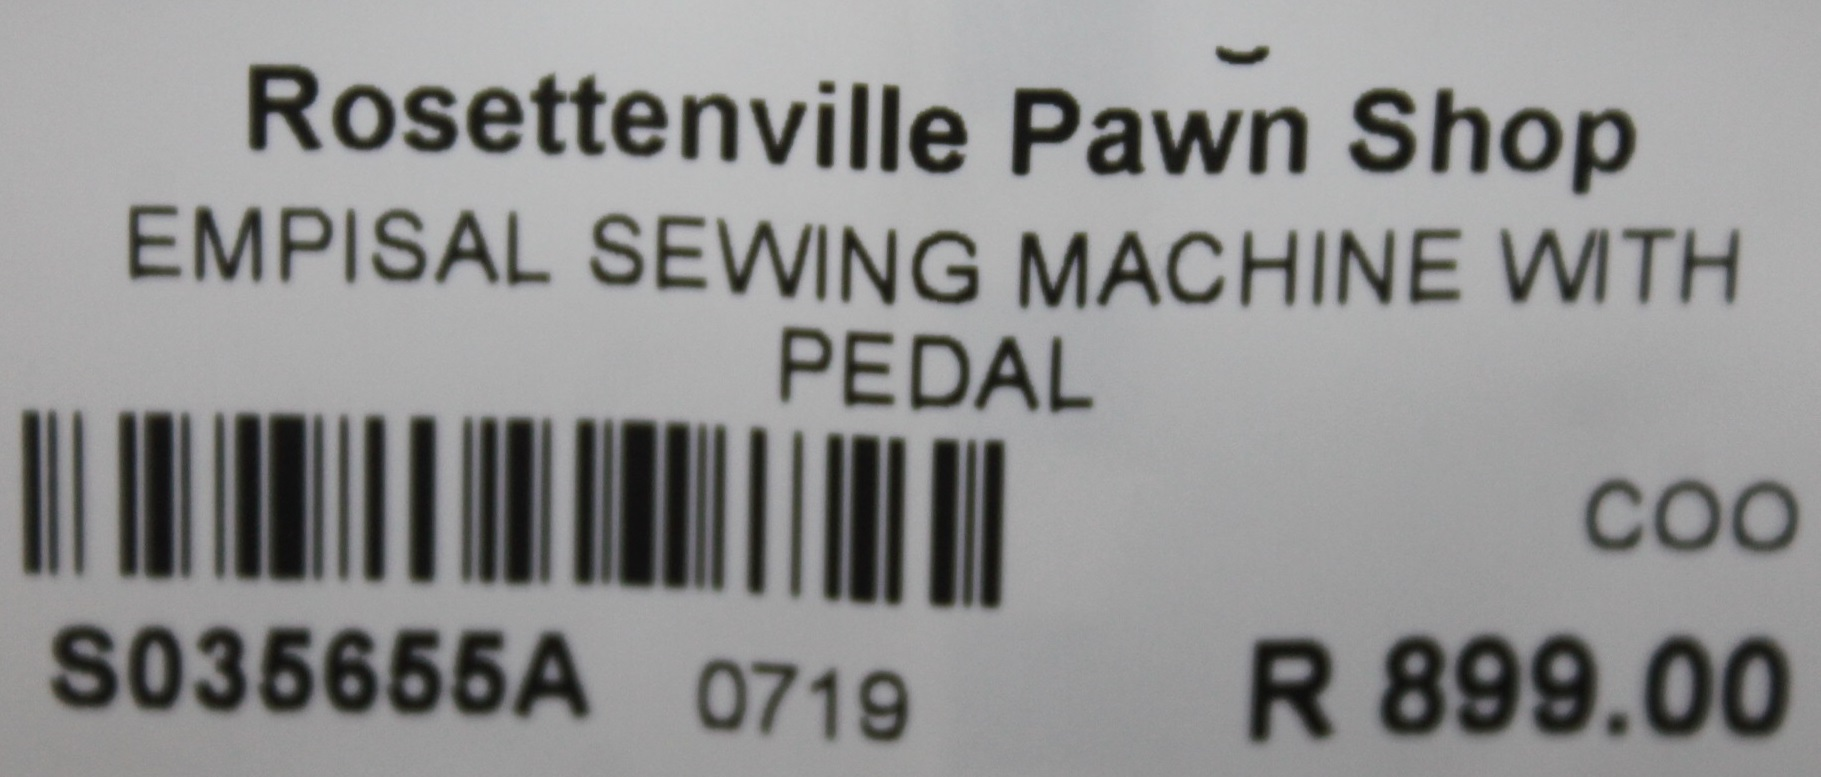 S035655A Empisal sewing machine with pedal #Rosettenvillepawnshop